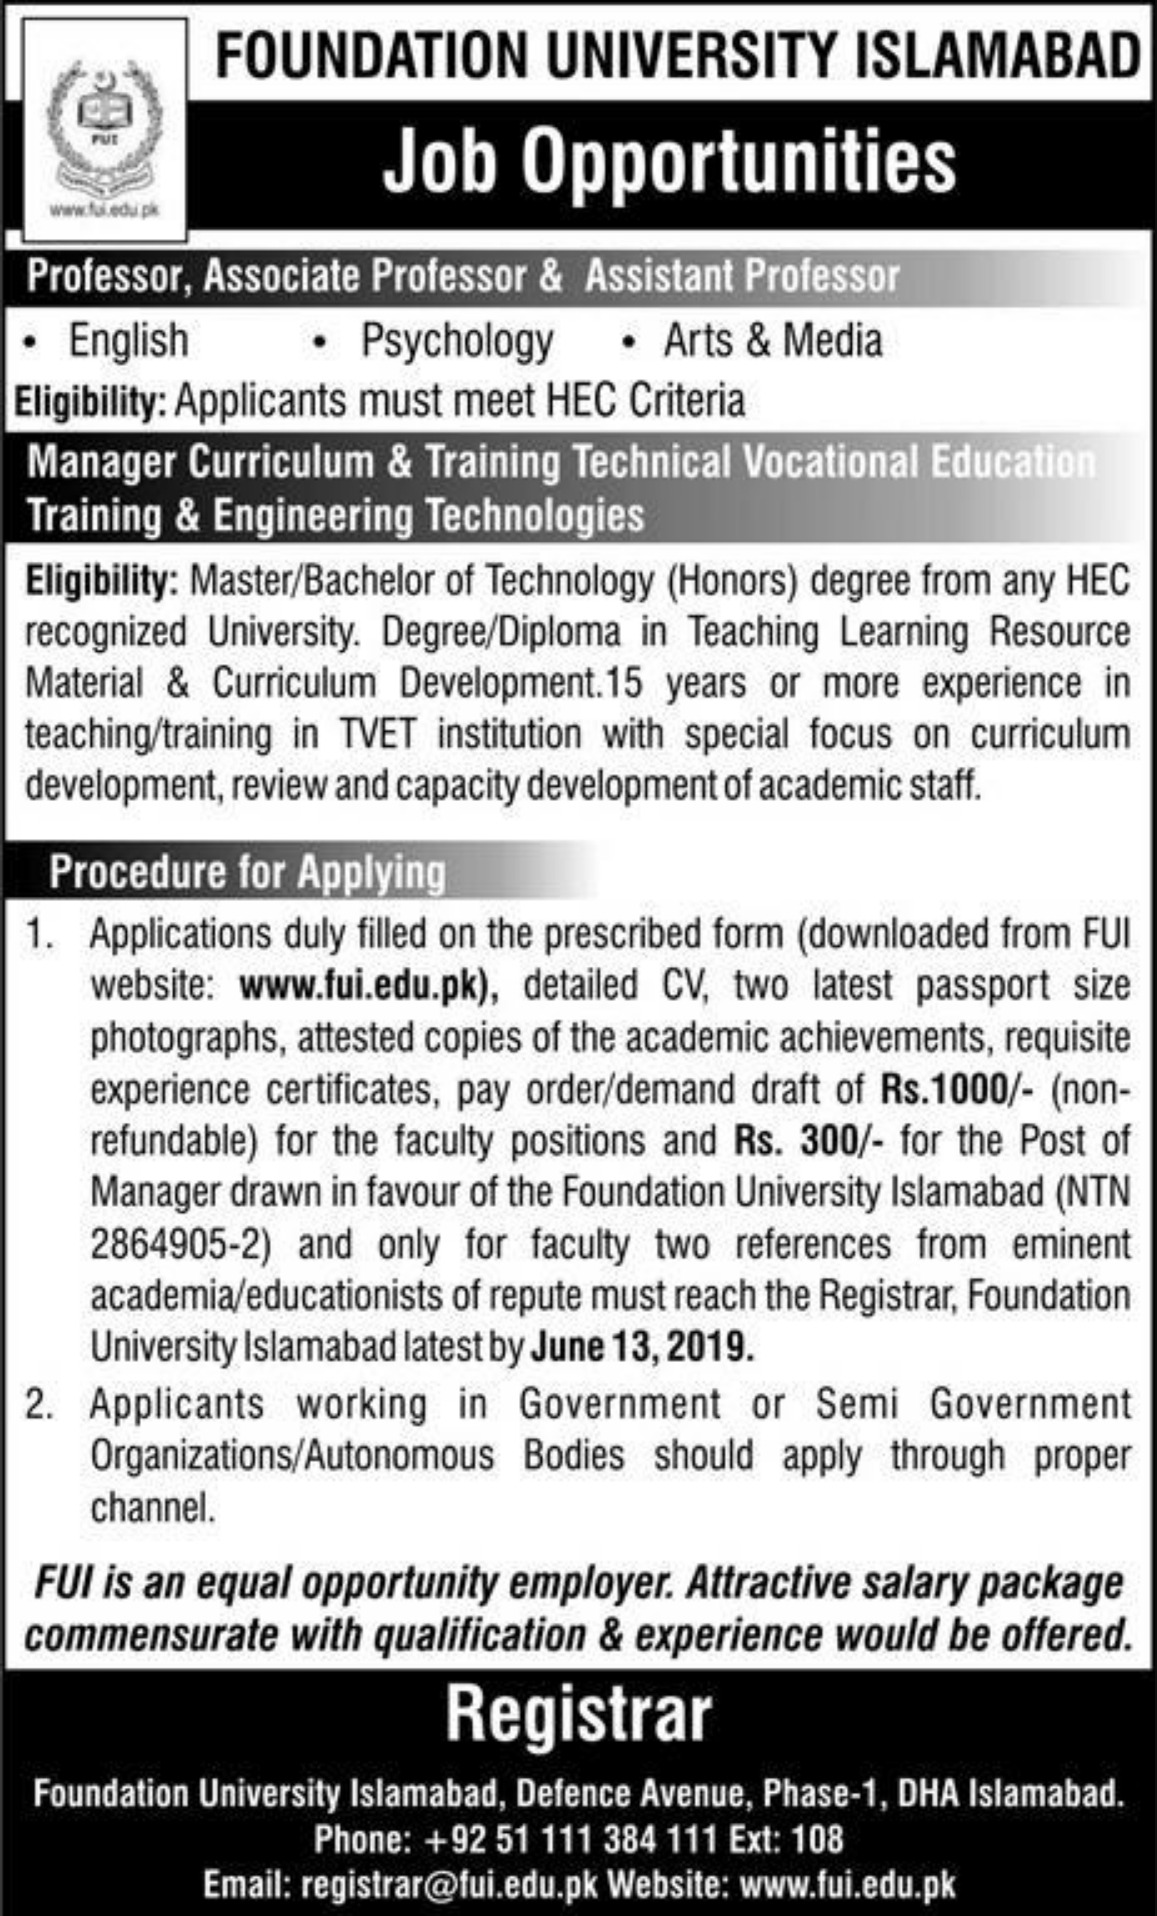 Foundation University Islamabad Jobs 2019